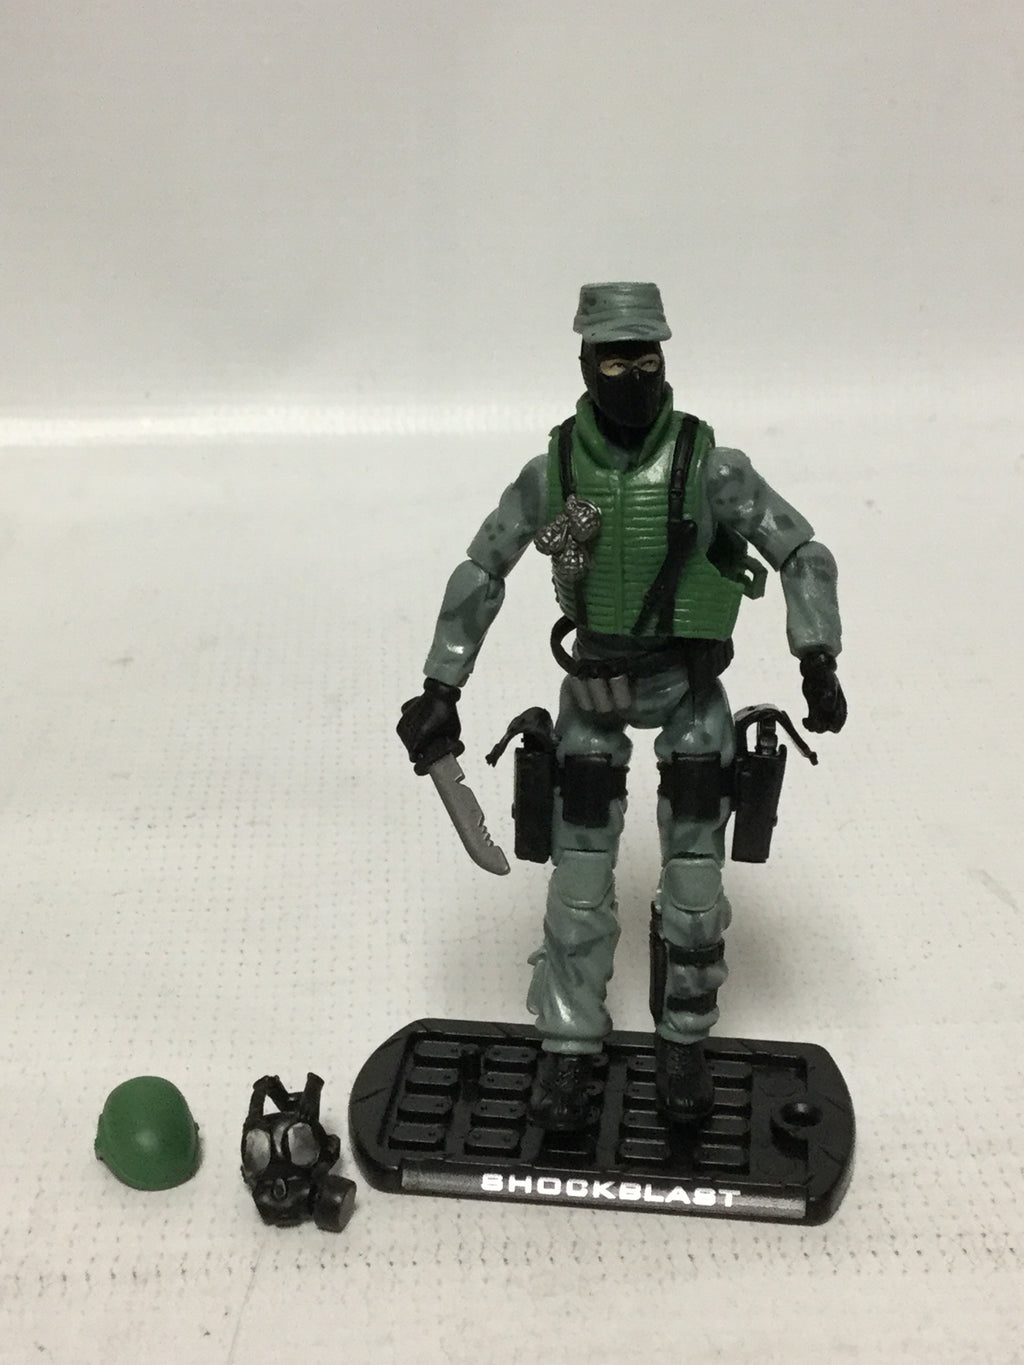 Hasbro G.I. Joe Rise Of Cobra Shockblast